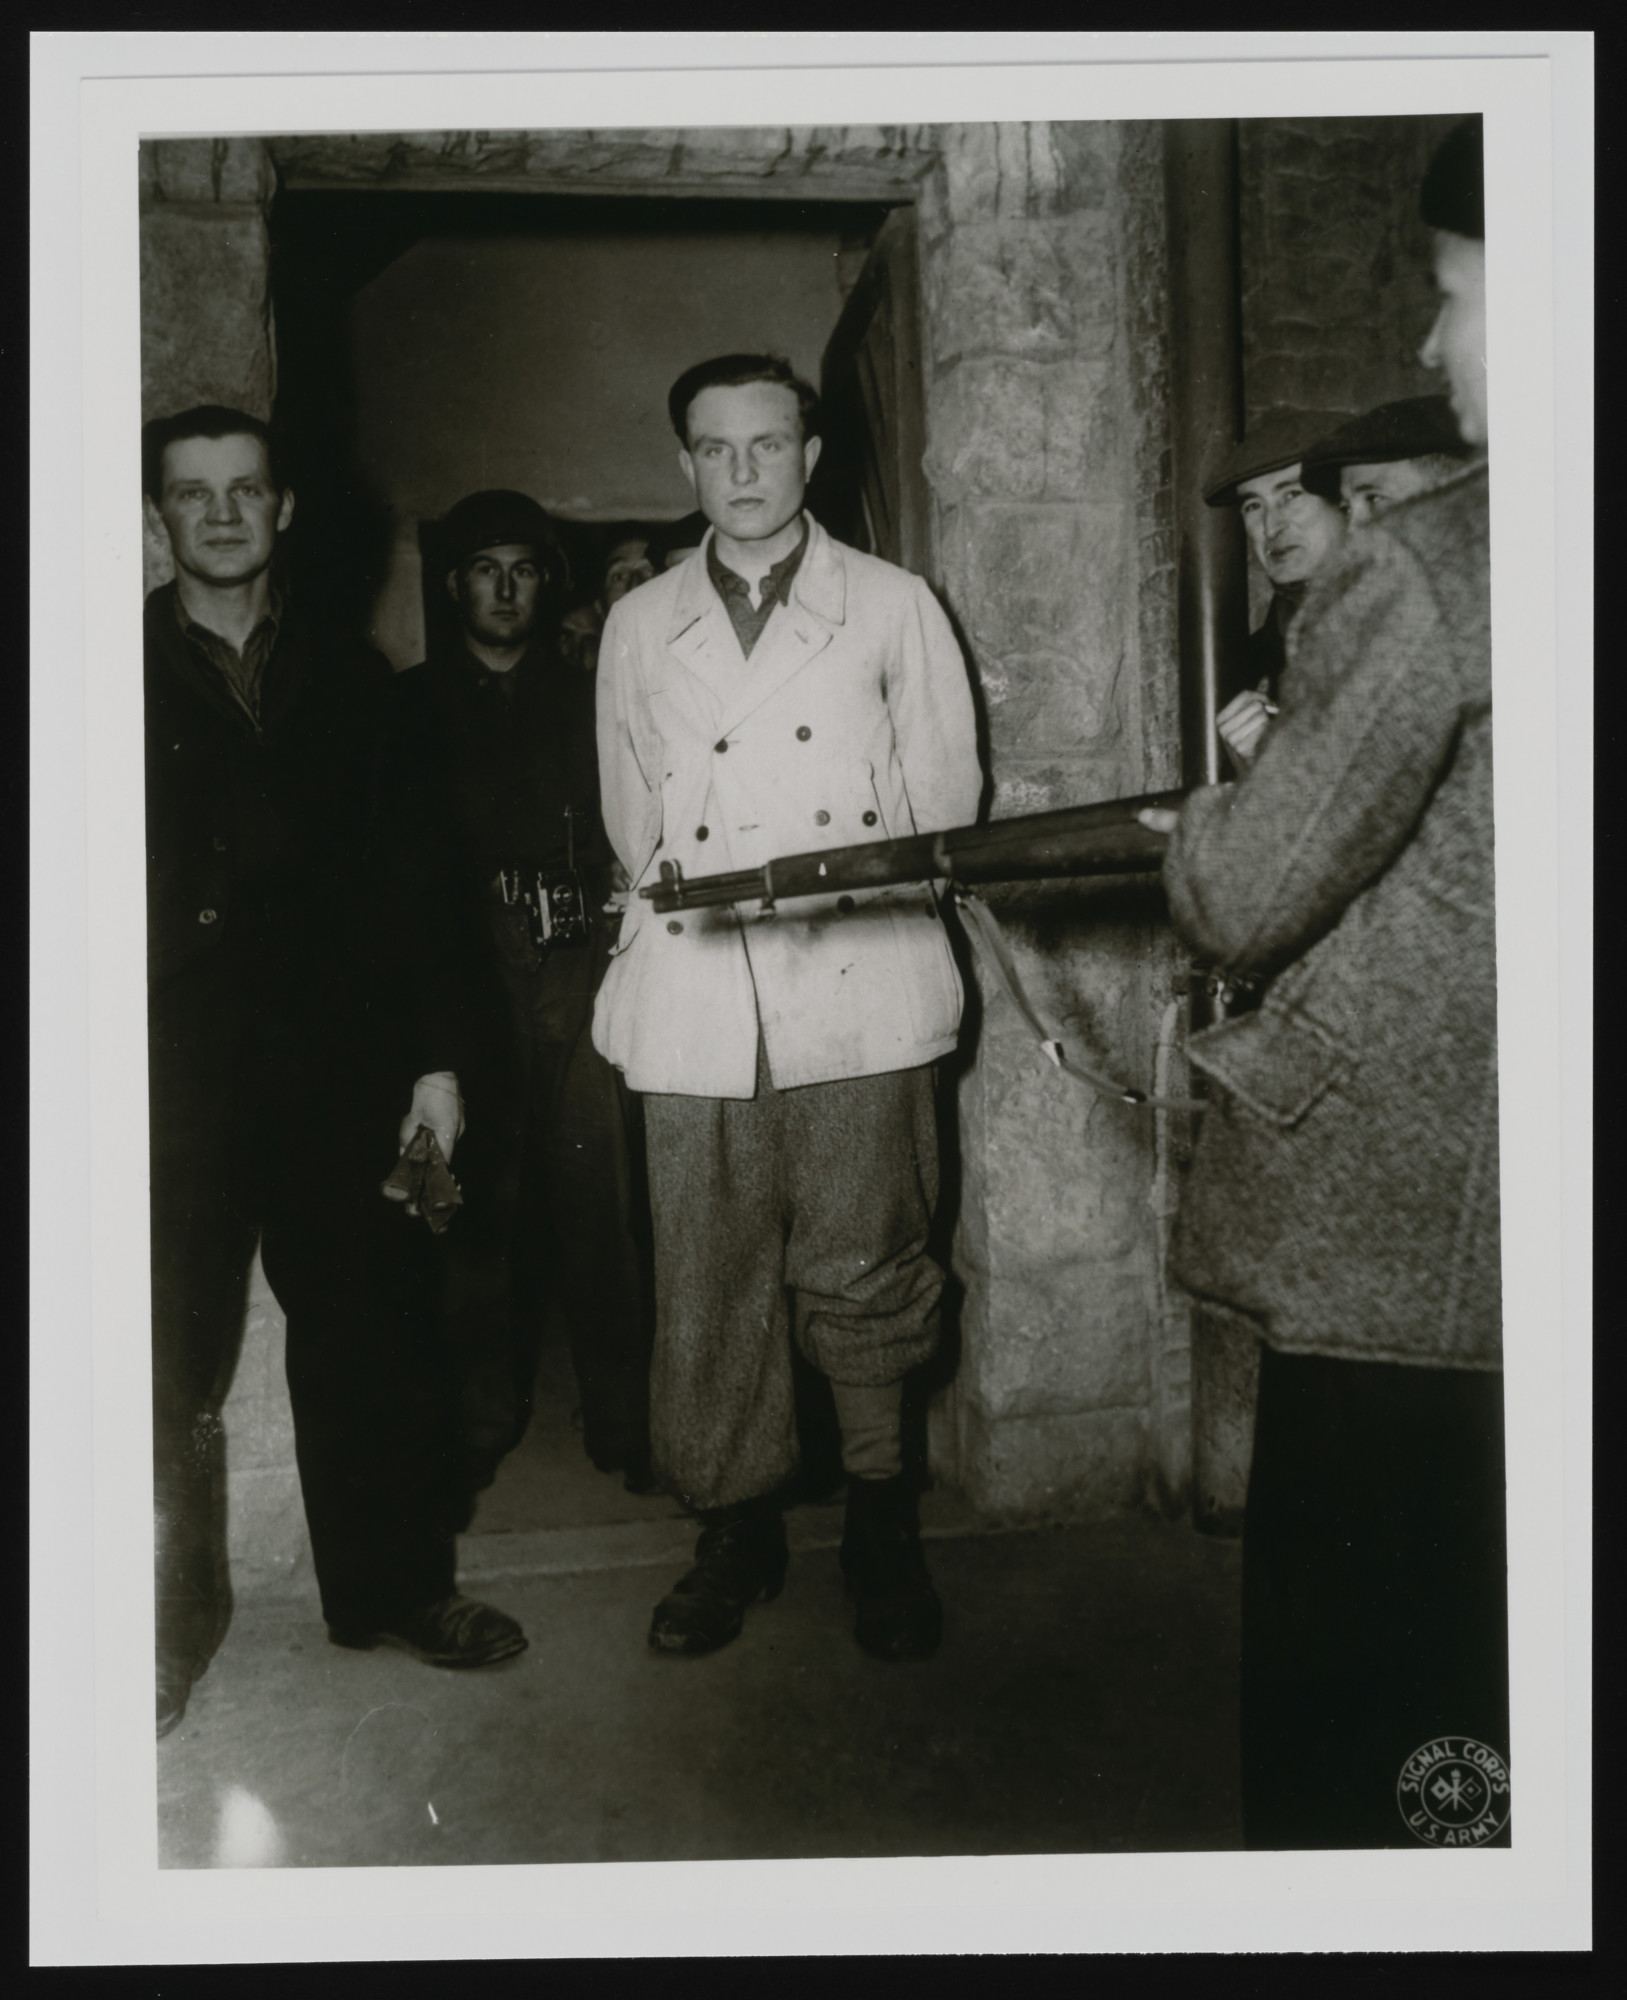 Armed survivors in Buchenwald hold two German guards(?) at gunpoint as an American soldier looks on.